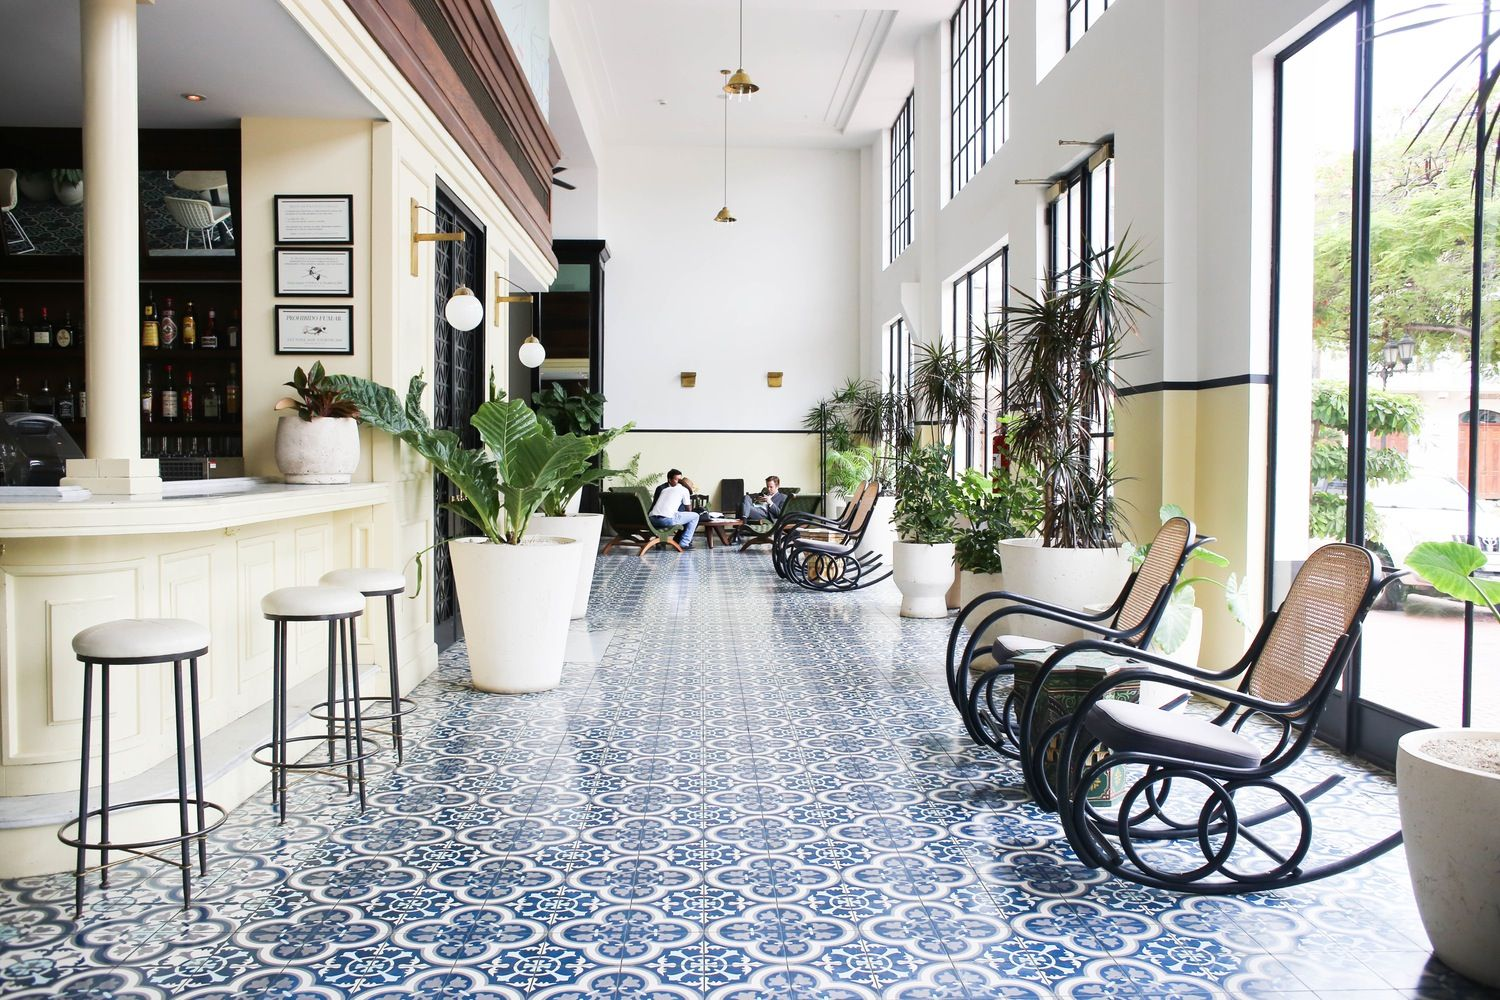 old and new mix in panama city's american trade hotel | best